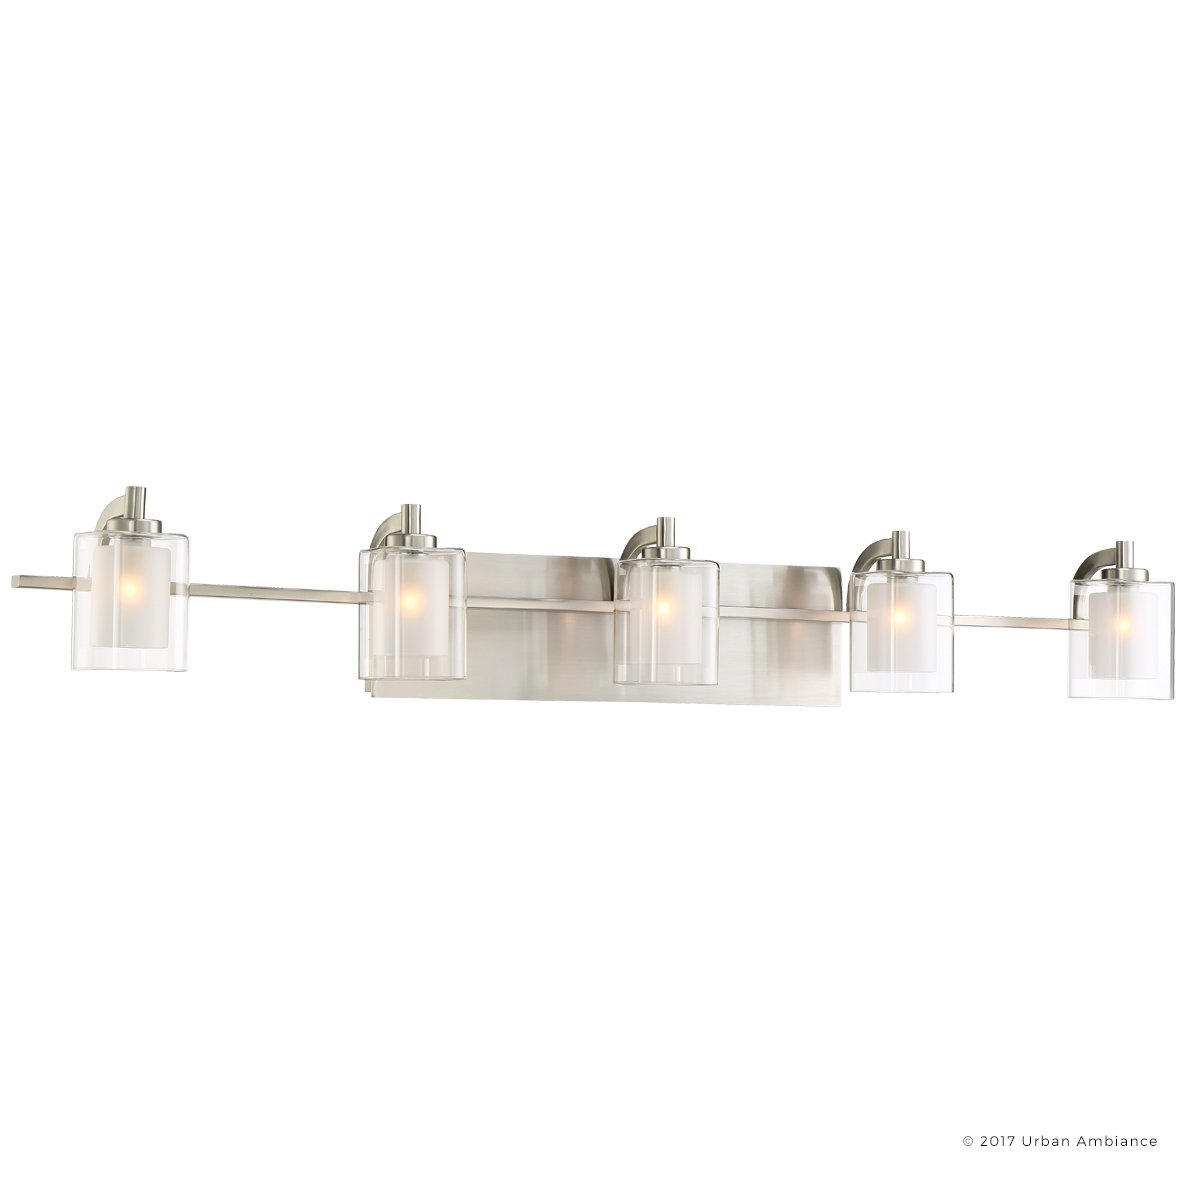 Luxury Modern Bathroom Vanity Light, Large Size: 6''H x 42''W, with Posh Style Elements, Brushed Nickel Finish and Sand Blasted Inner, Clear Outer Glass, G9 LED Technology, UQL2406 by Urban Ambiance